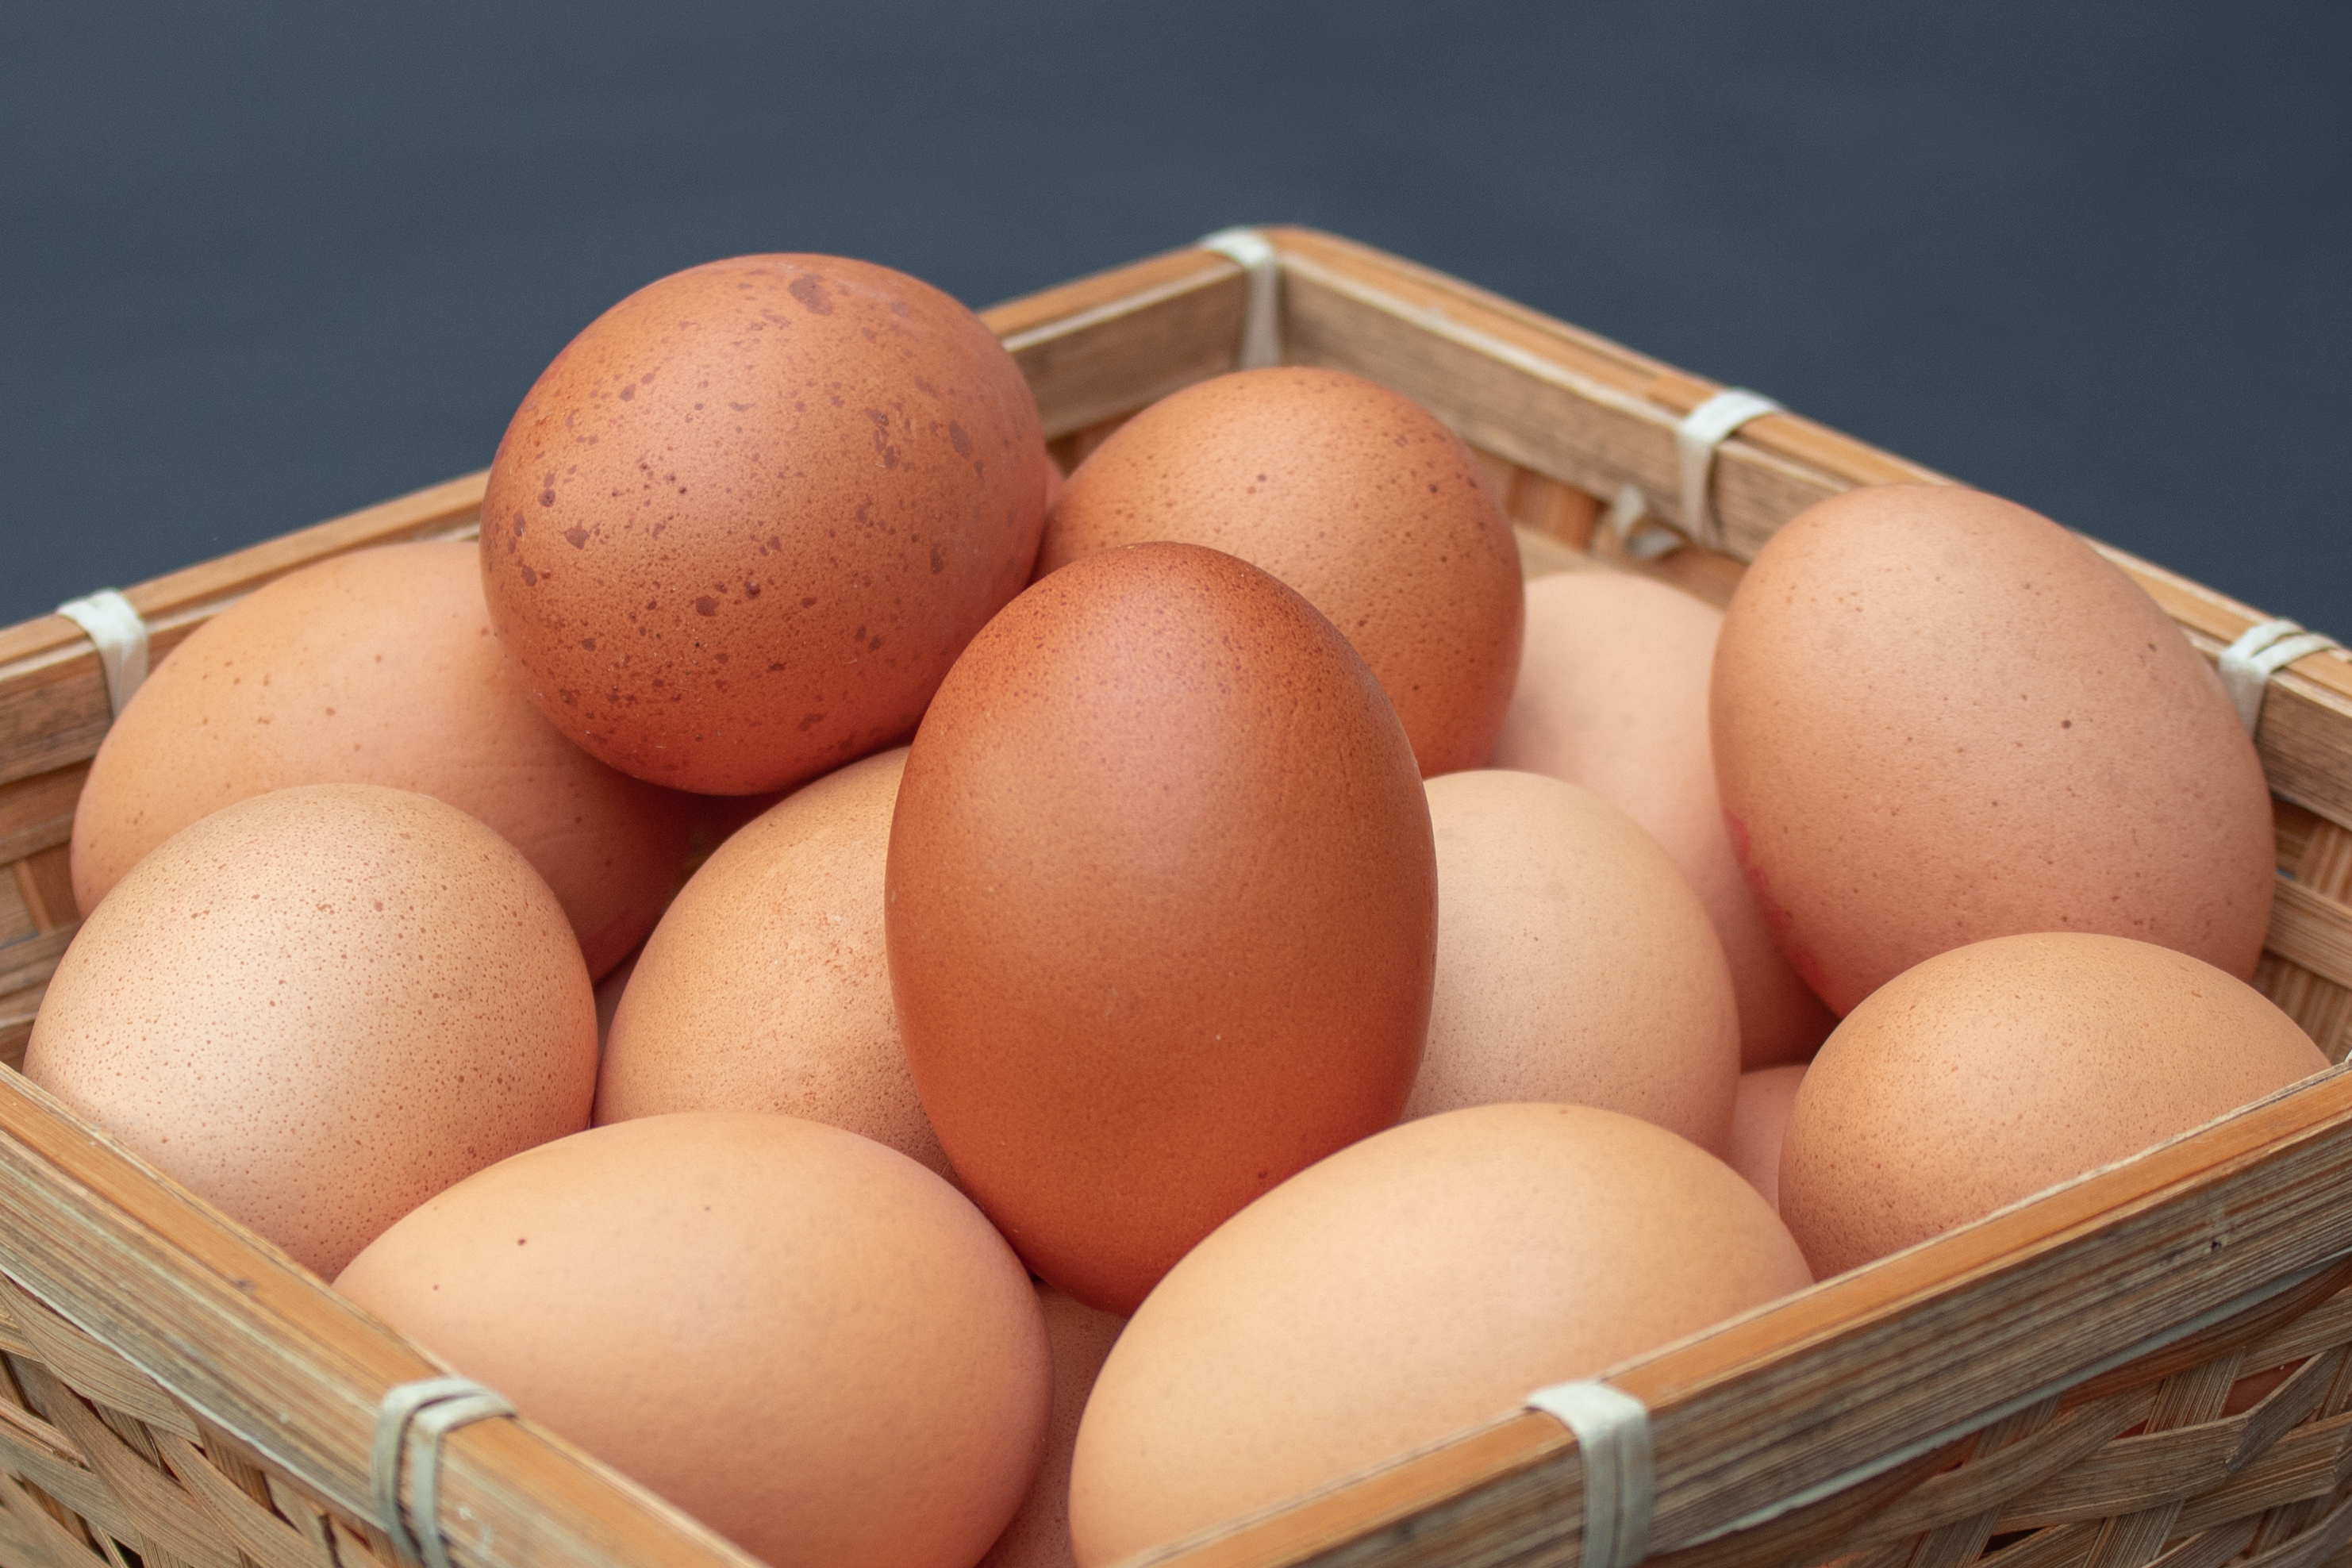 A Basket of Hens Eggs from the Side